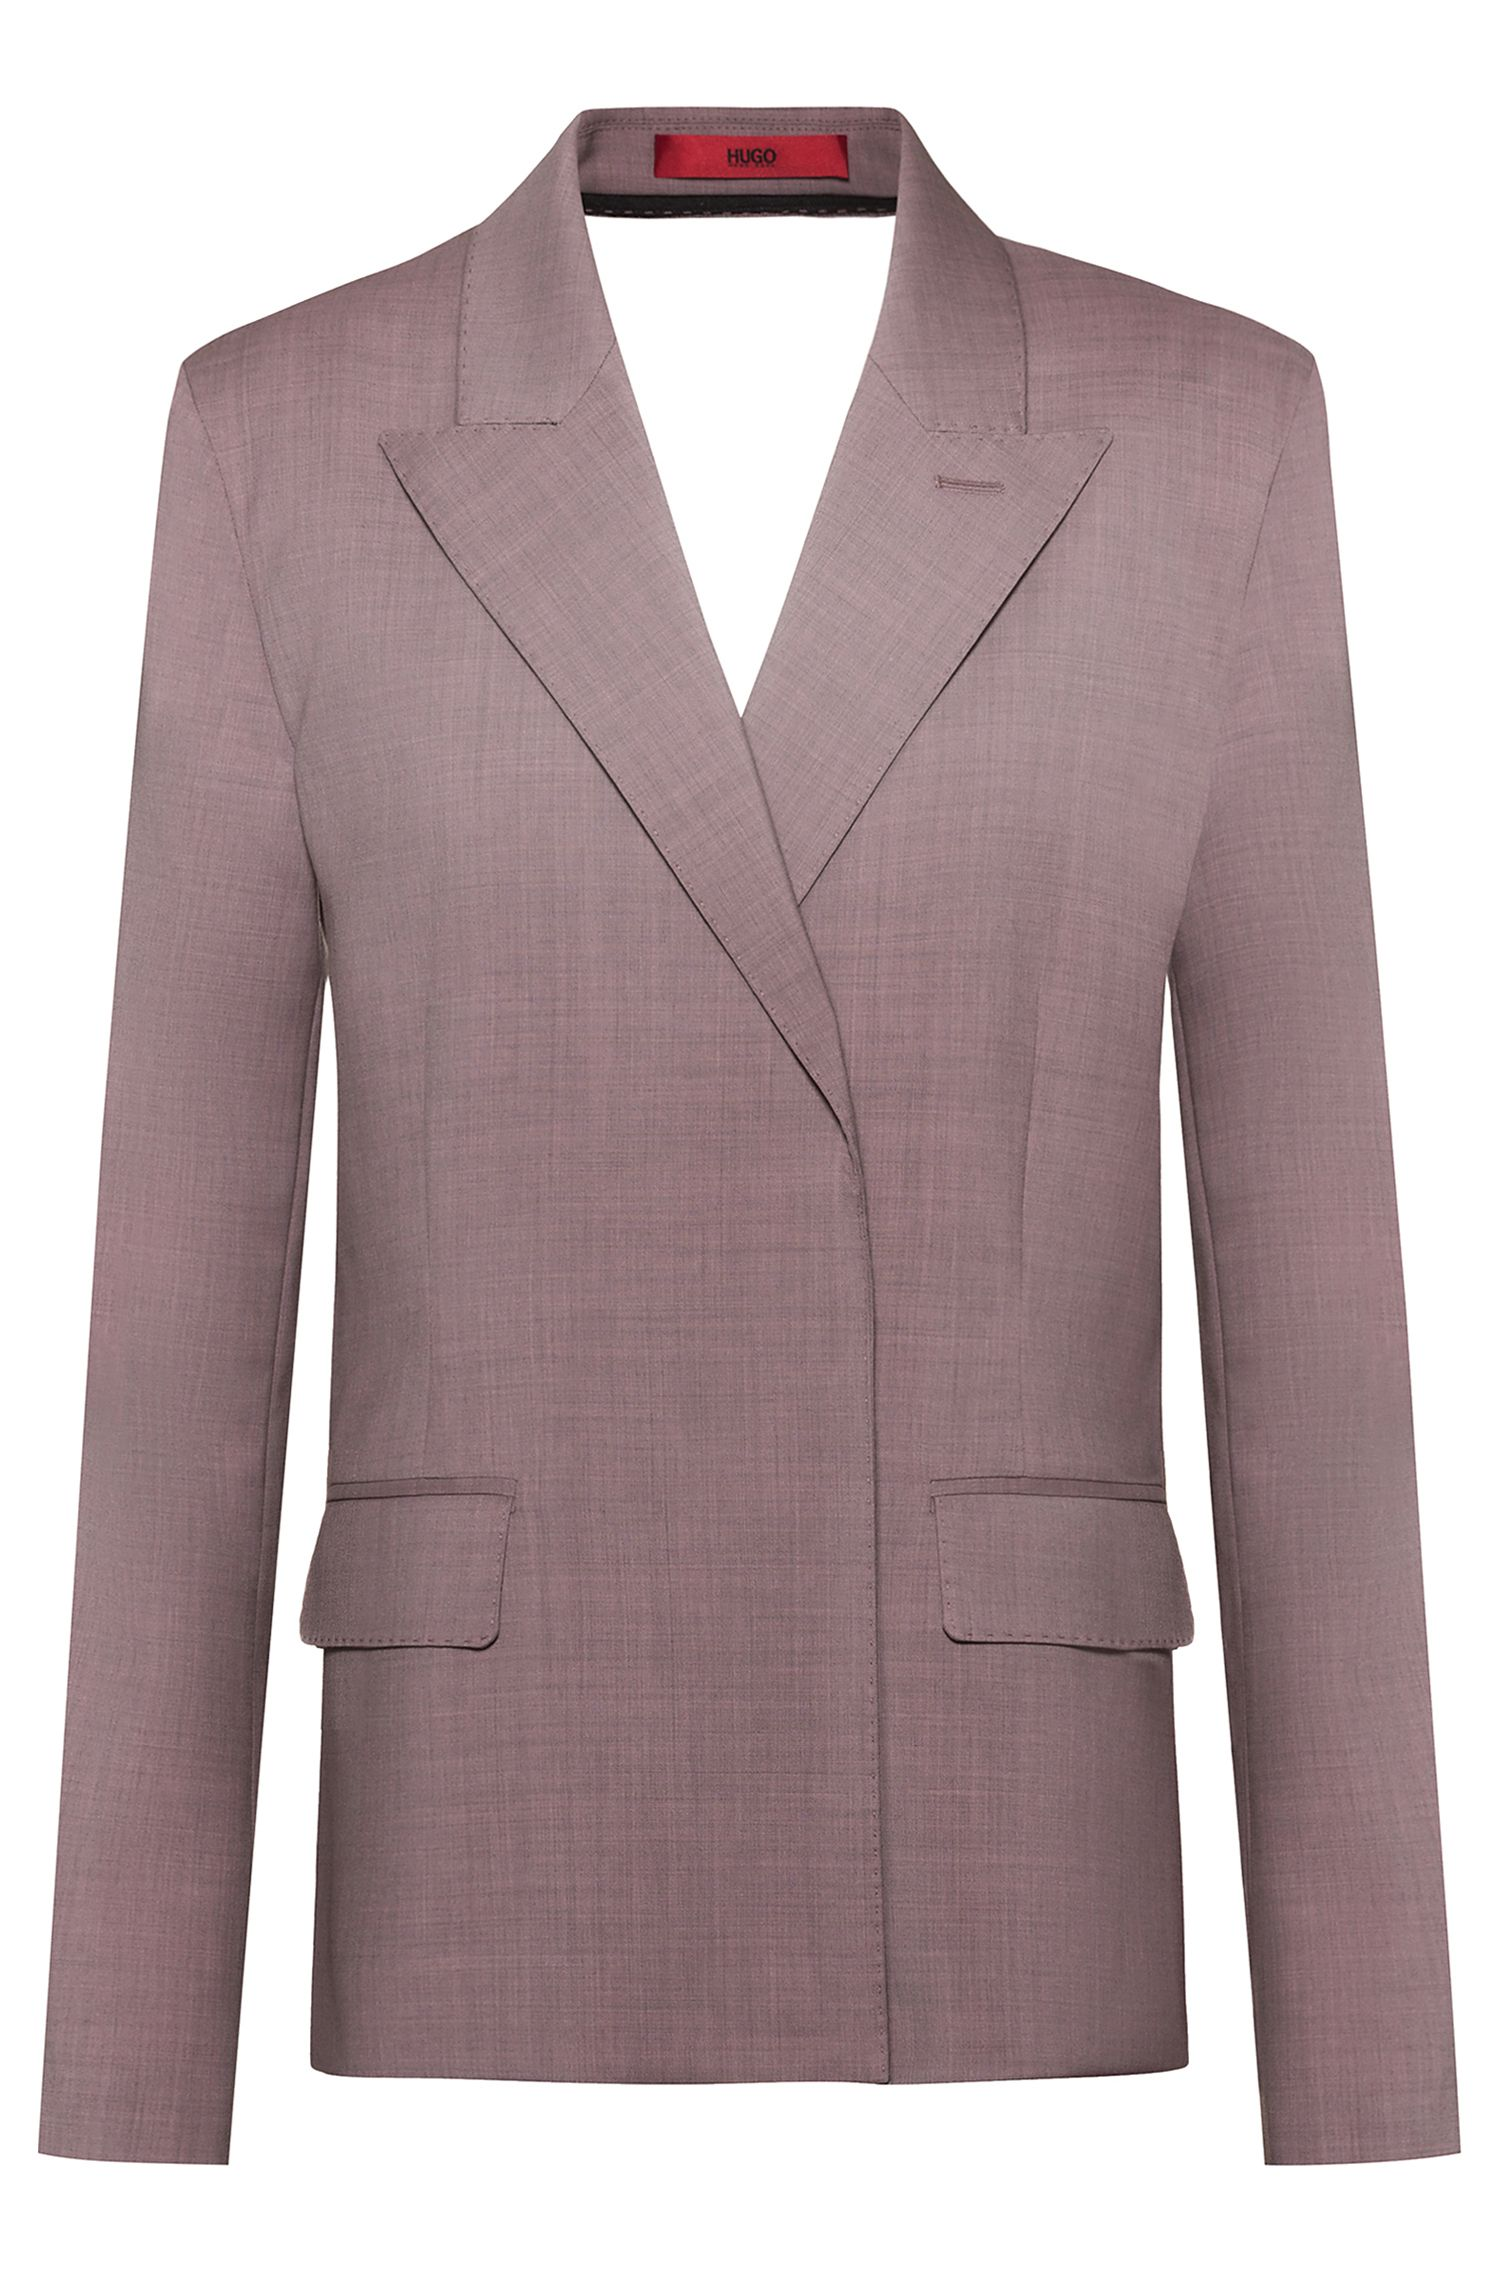 Fashion Show backless jacket in virgin wool, light pink